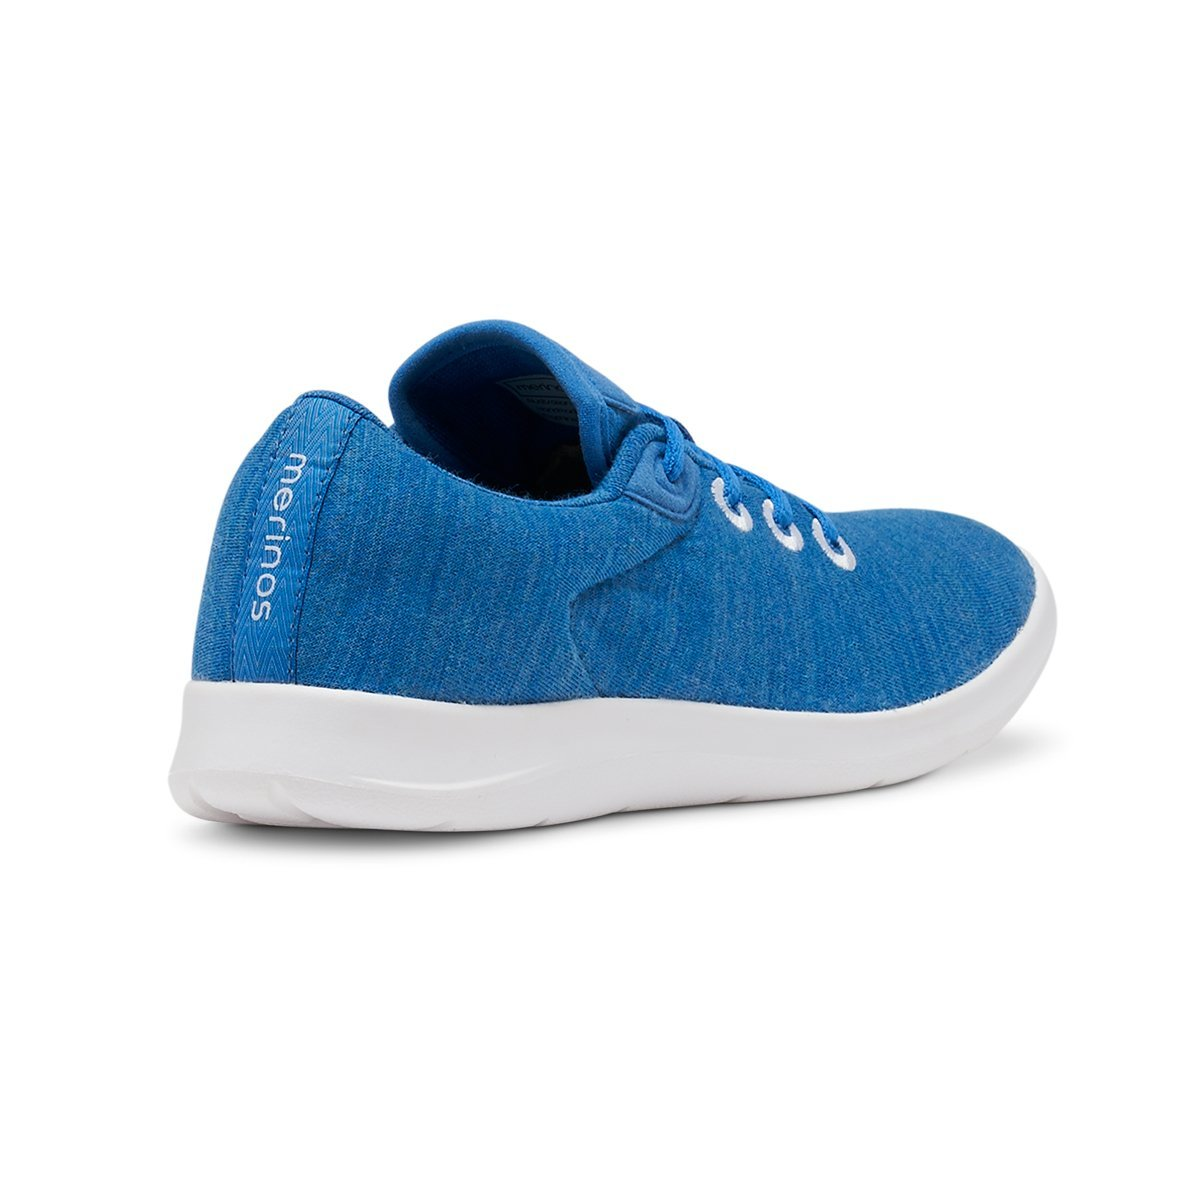 Women's Lace-Ups Bright Blue